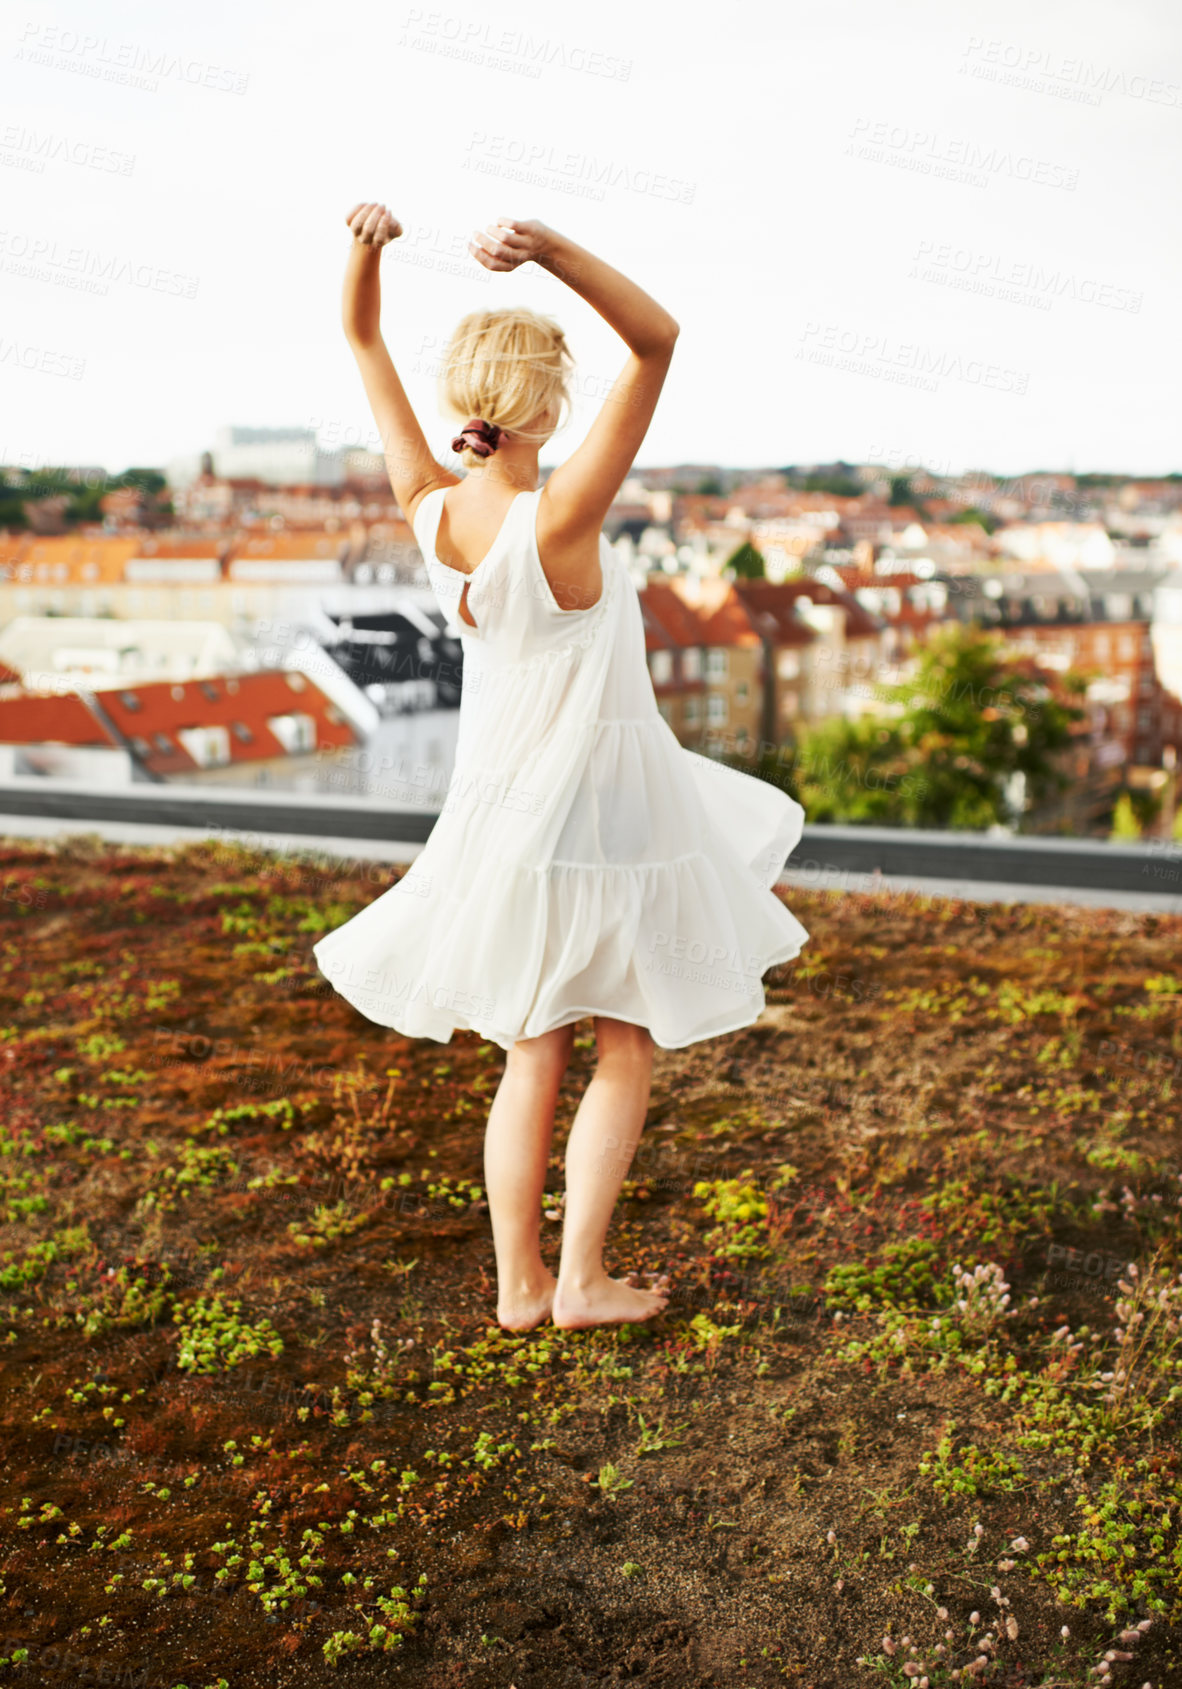 Buy stock photo A beautiful young woman dancing outside while looking at a city in the background